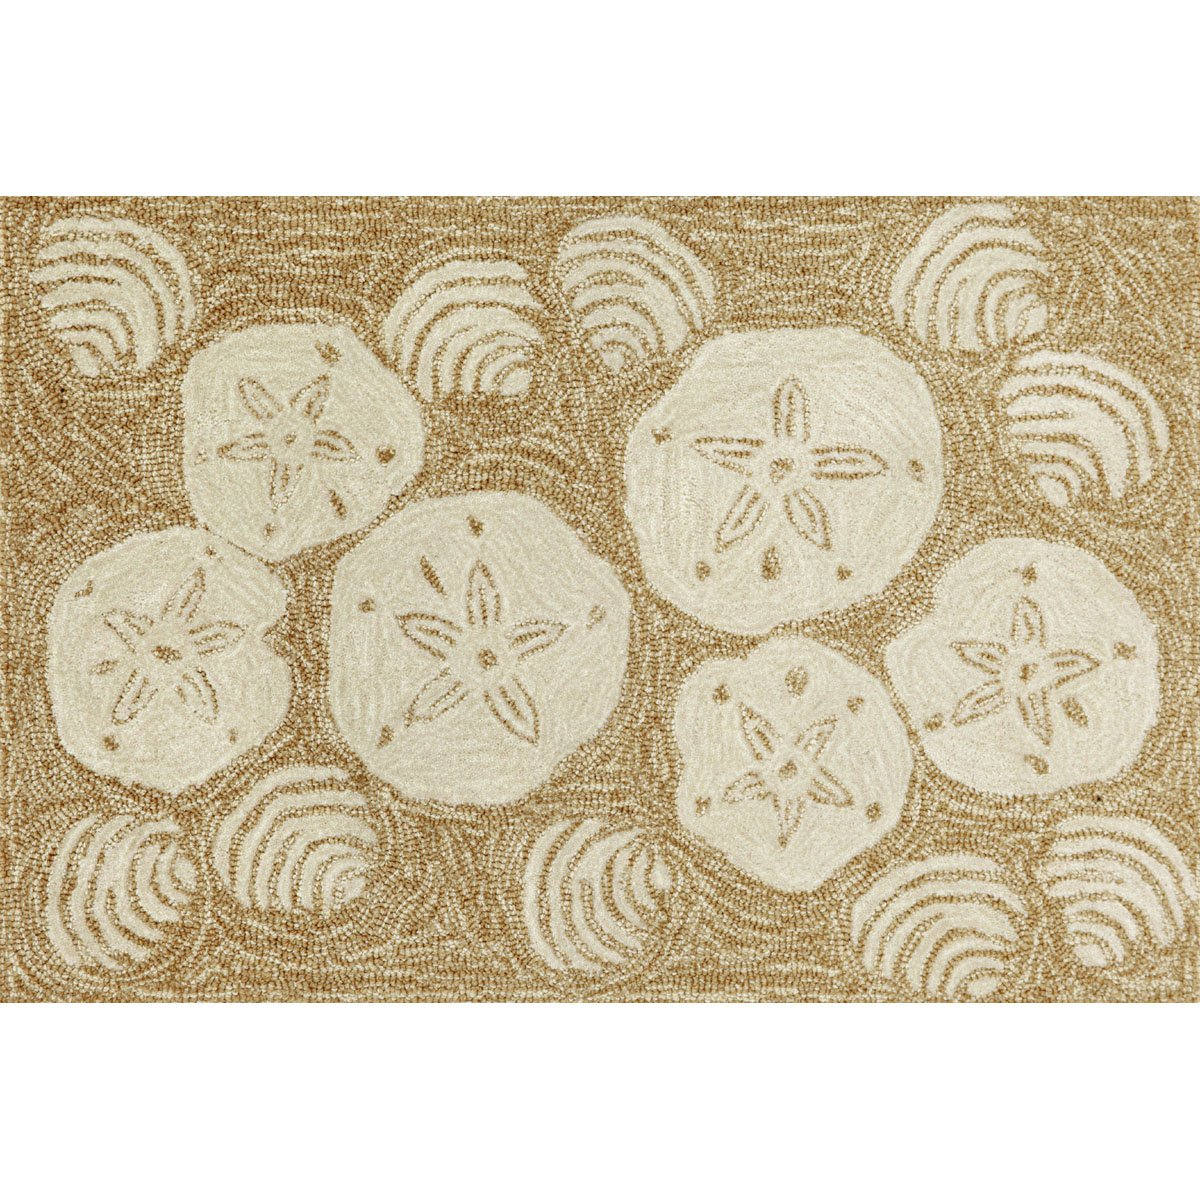 Liora Manne FT012A34622 Whimsy Beach Rocks Area Rug, Indoor/Outdoor, Scatter Size, Natural